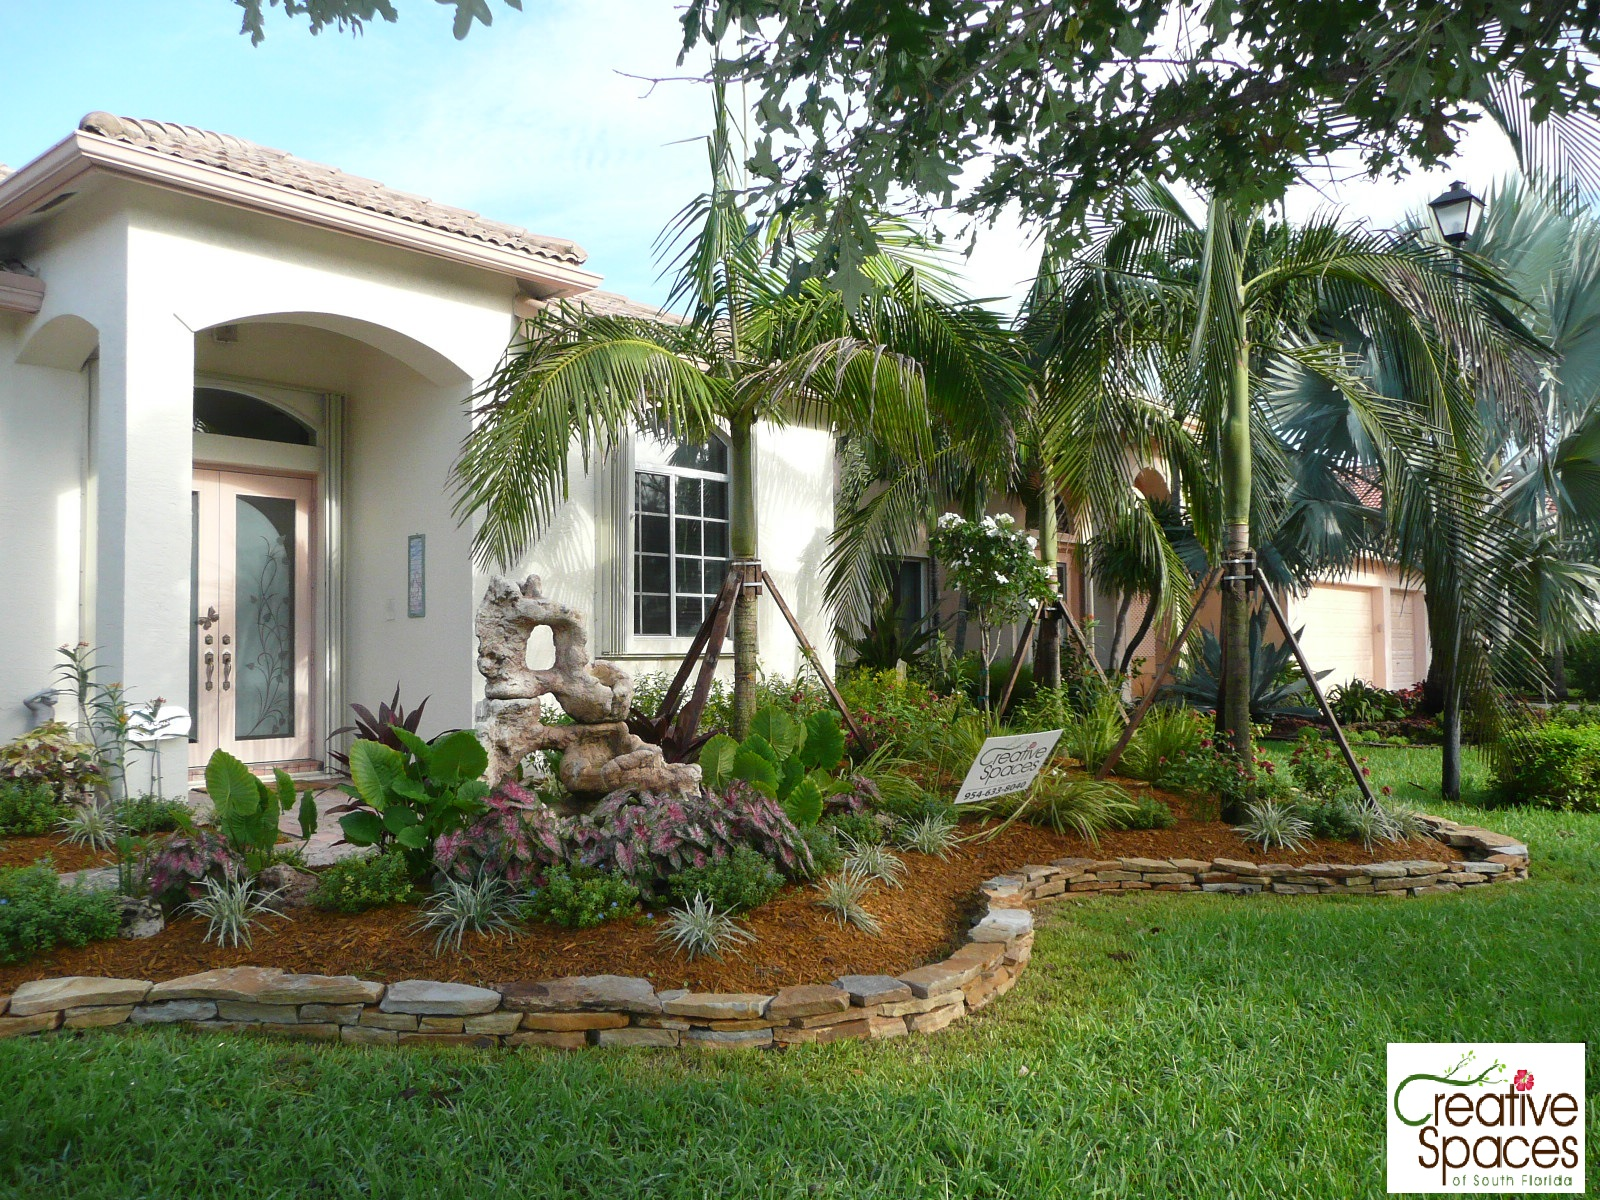 Gardening In South Florida: A Few Of Our Client Projects